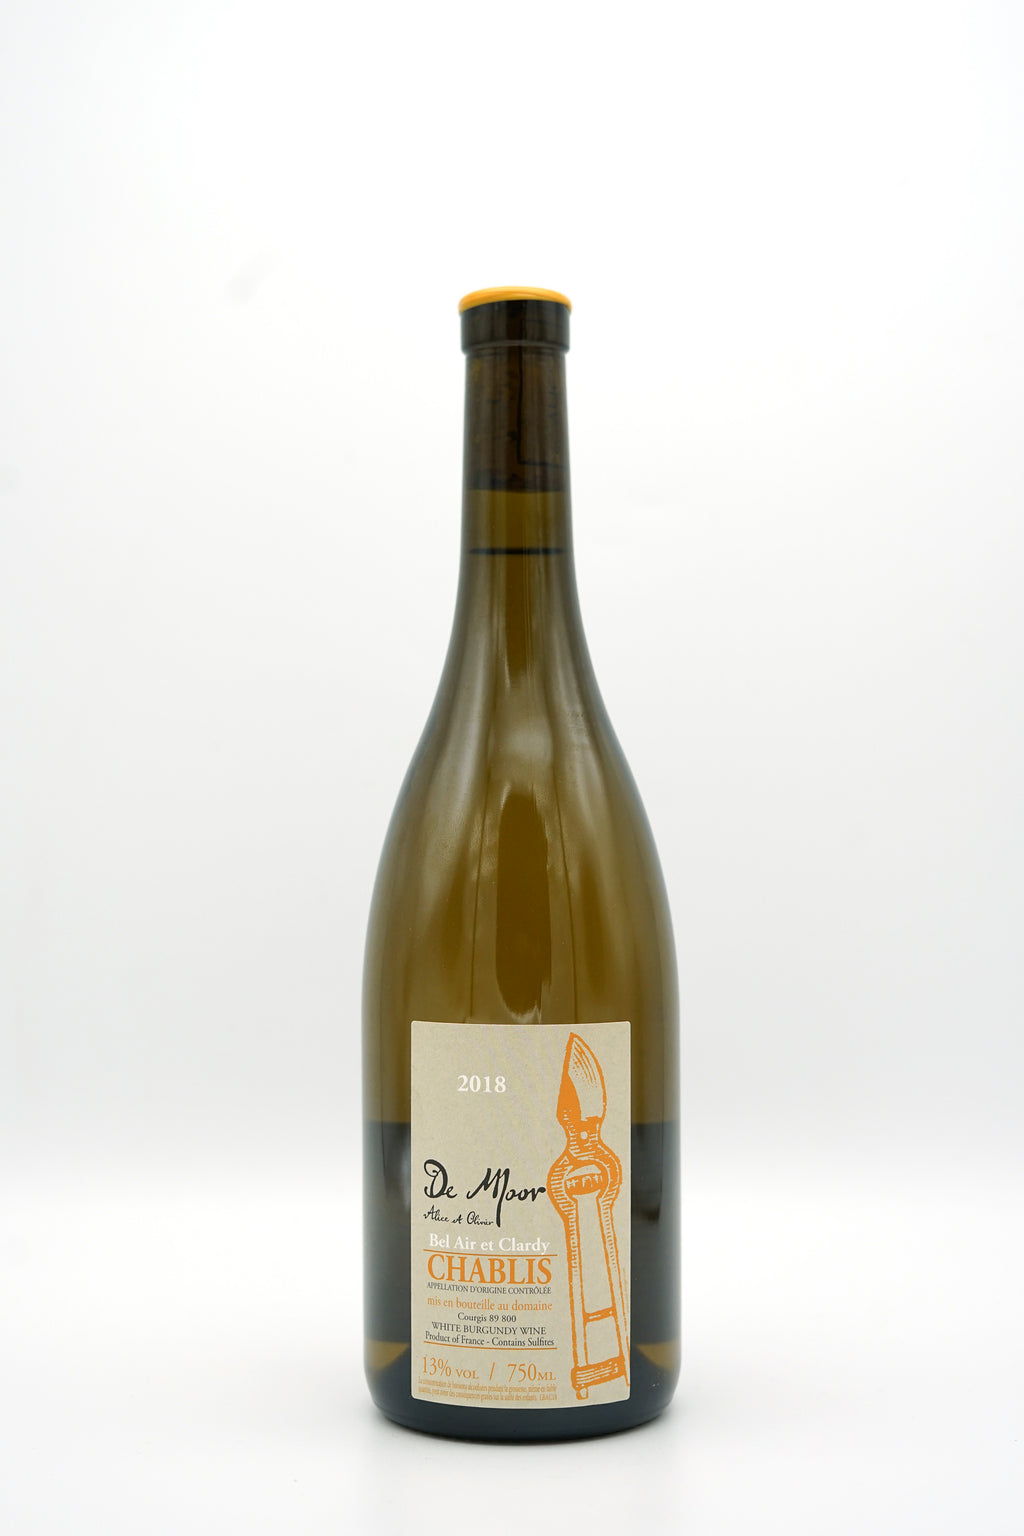 Chablis Bel-Air et Clardy 2018 - de Moor - SOLD OUT